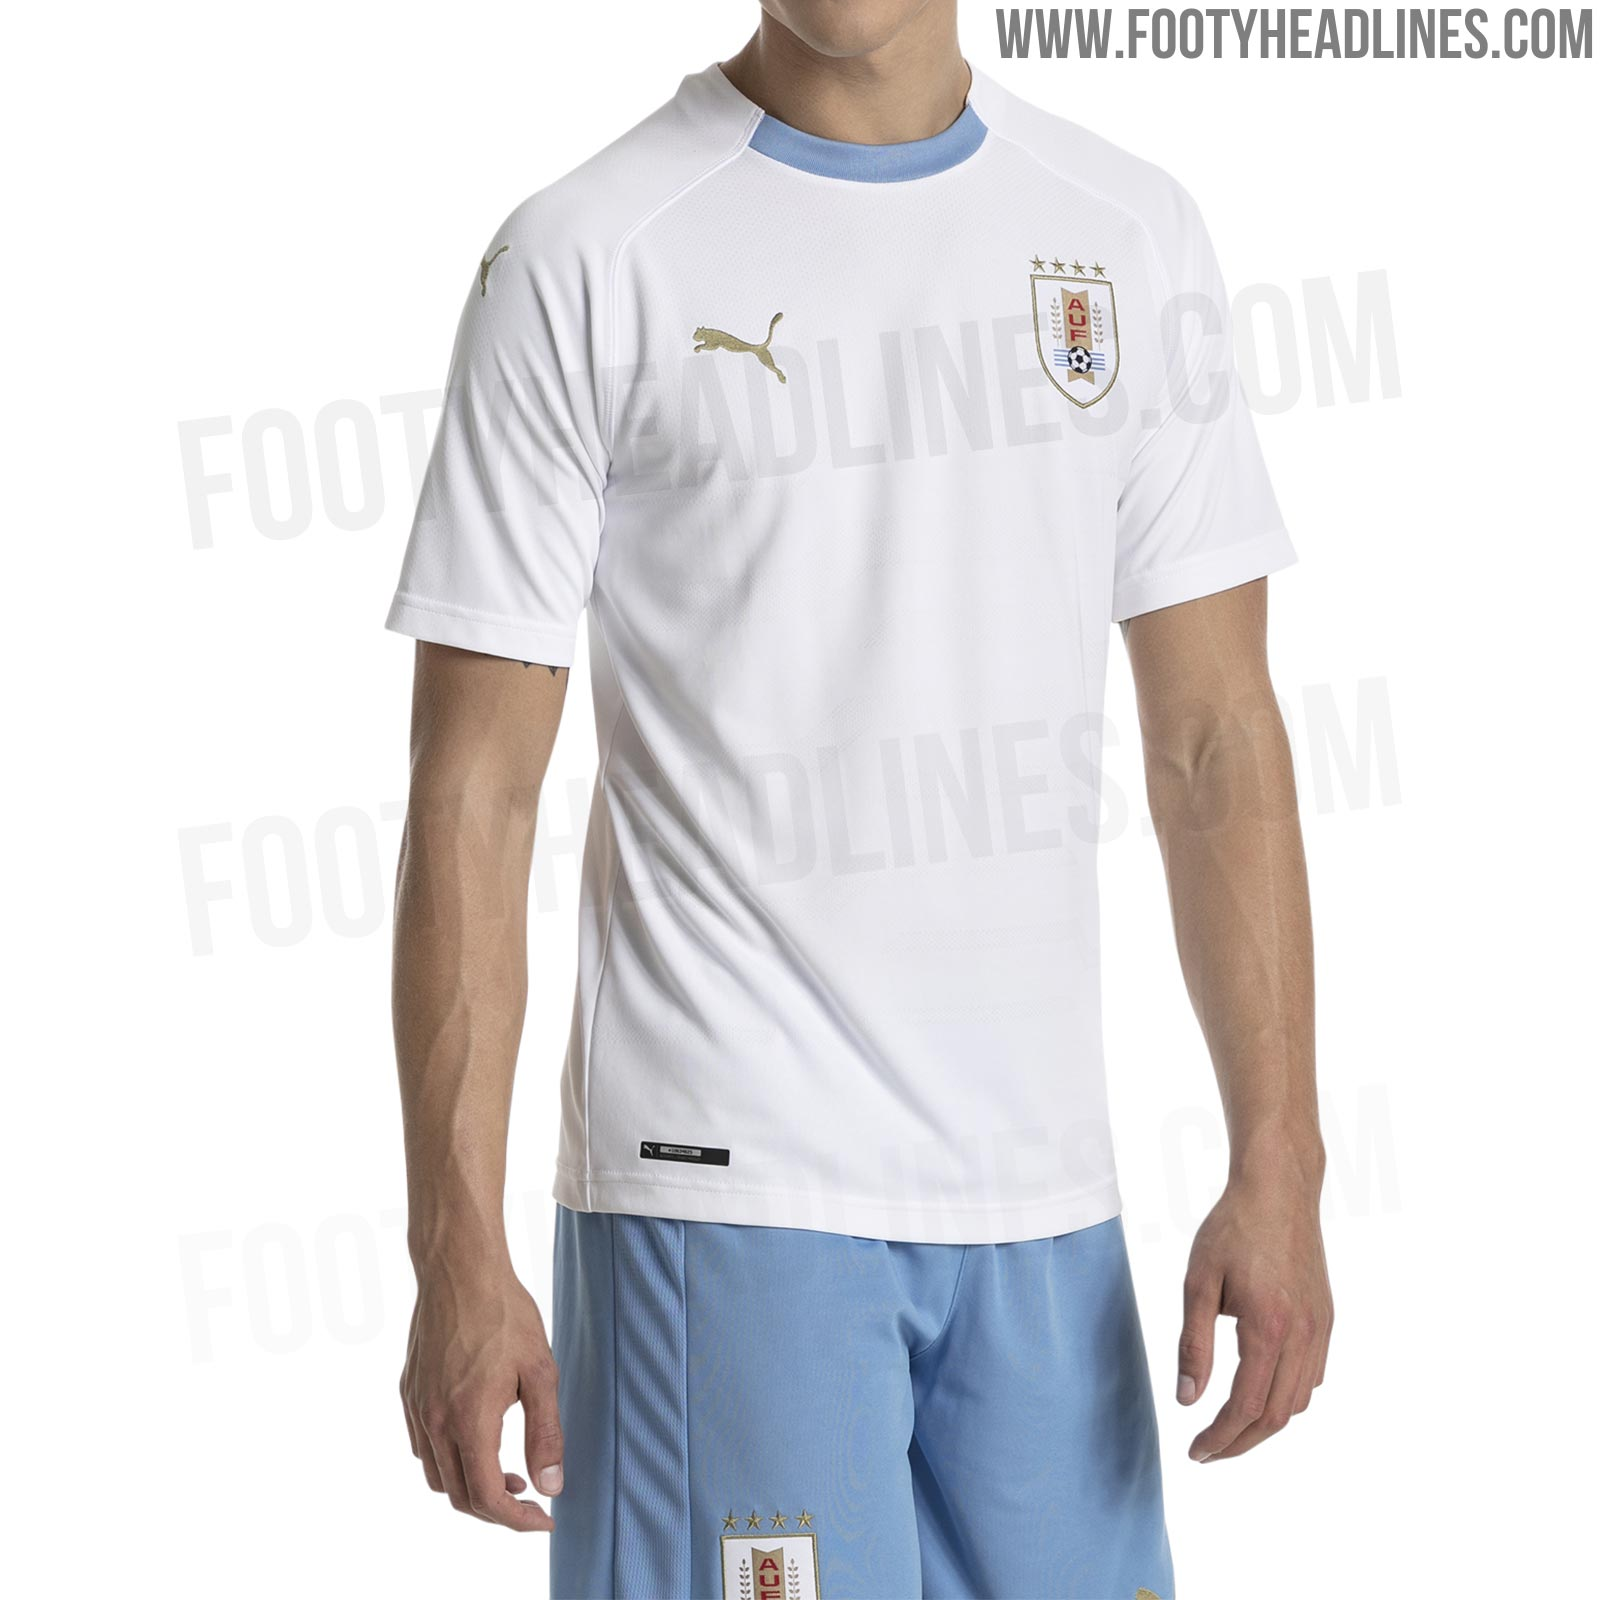 472991a8 Not one to generate extreme reactions in either direction, the Uruguay 2018  World Cup away jersey is white with gold Puma logos and sky blue trim on  the ...